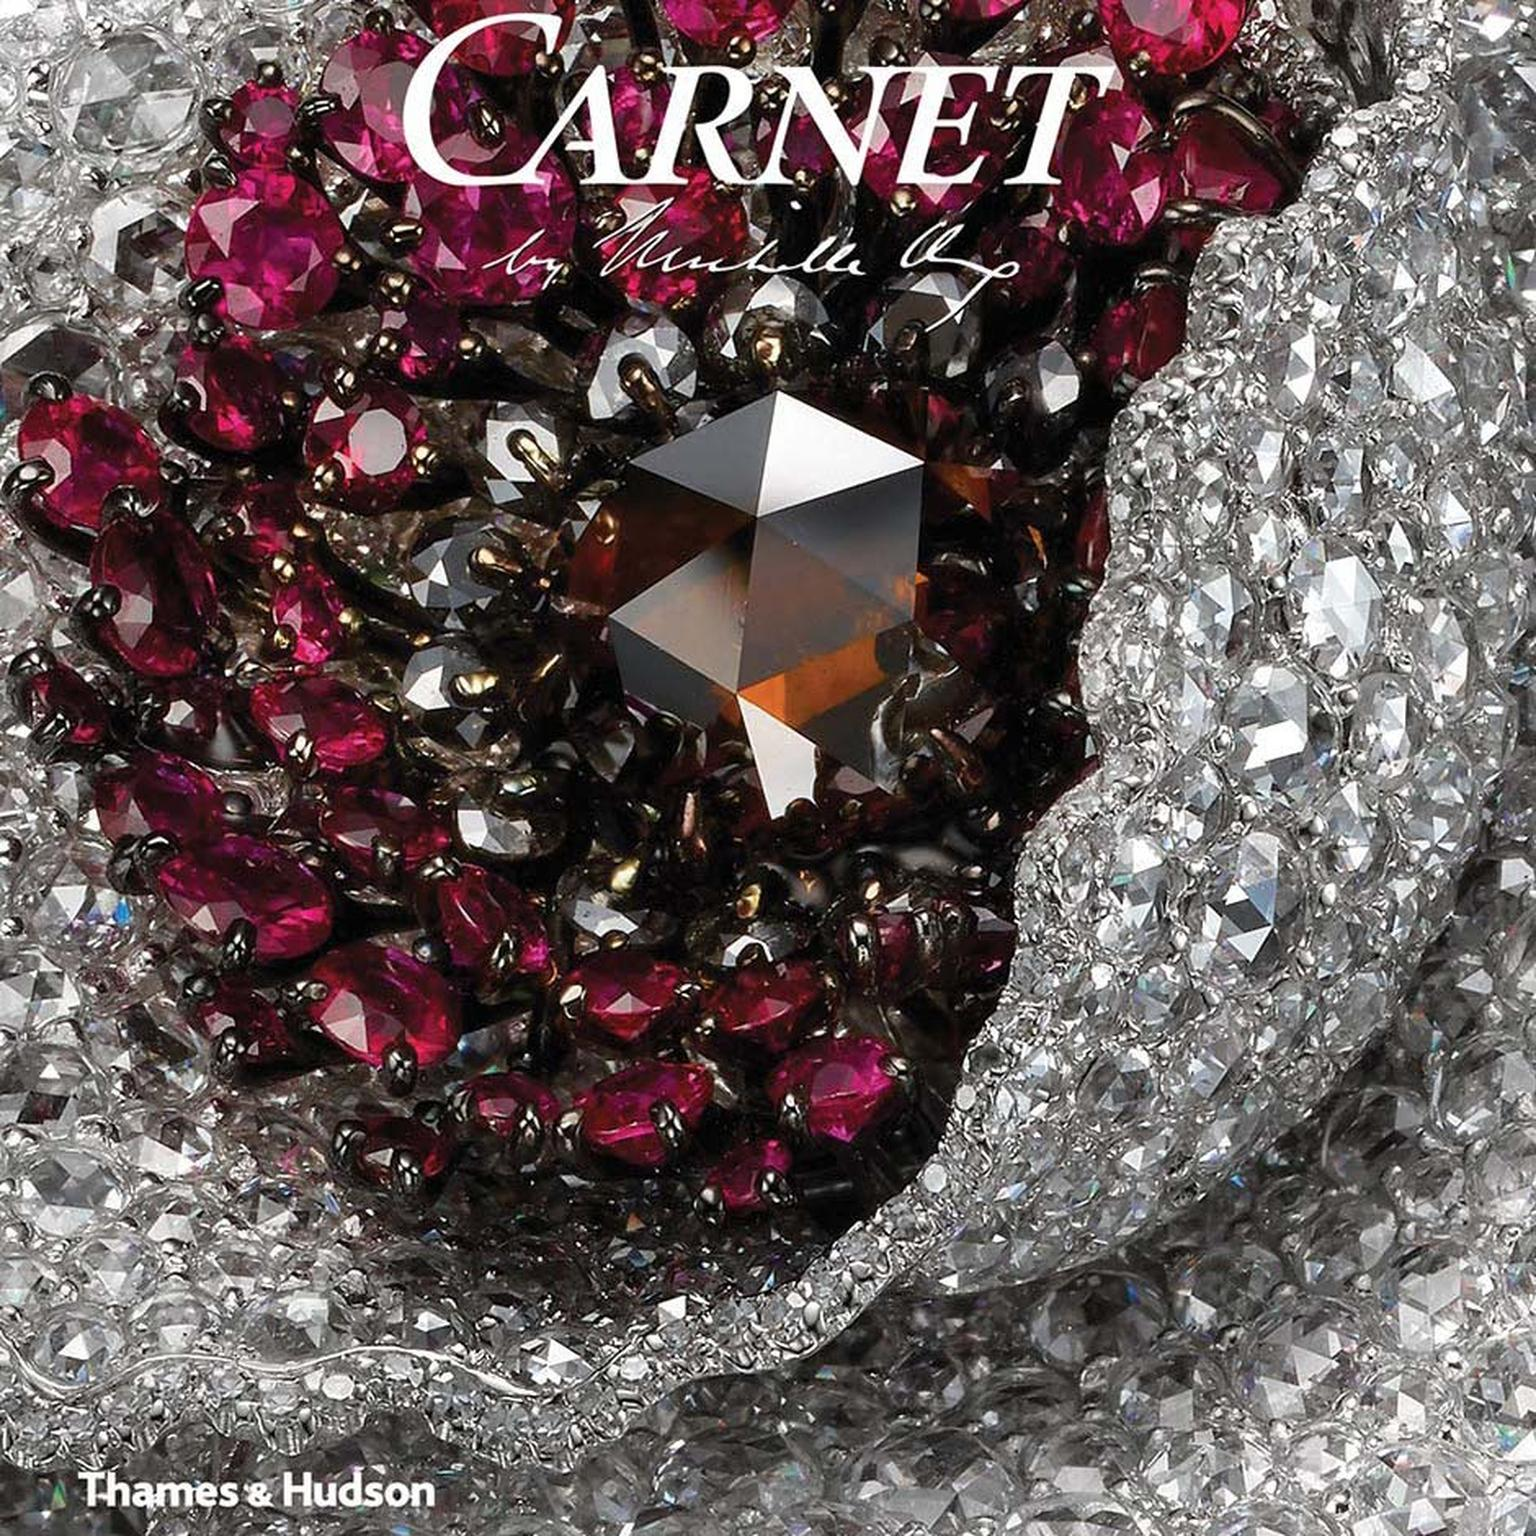 Vivienne Becker's book about Michelle Ong's Carnet jewels